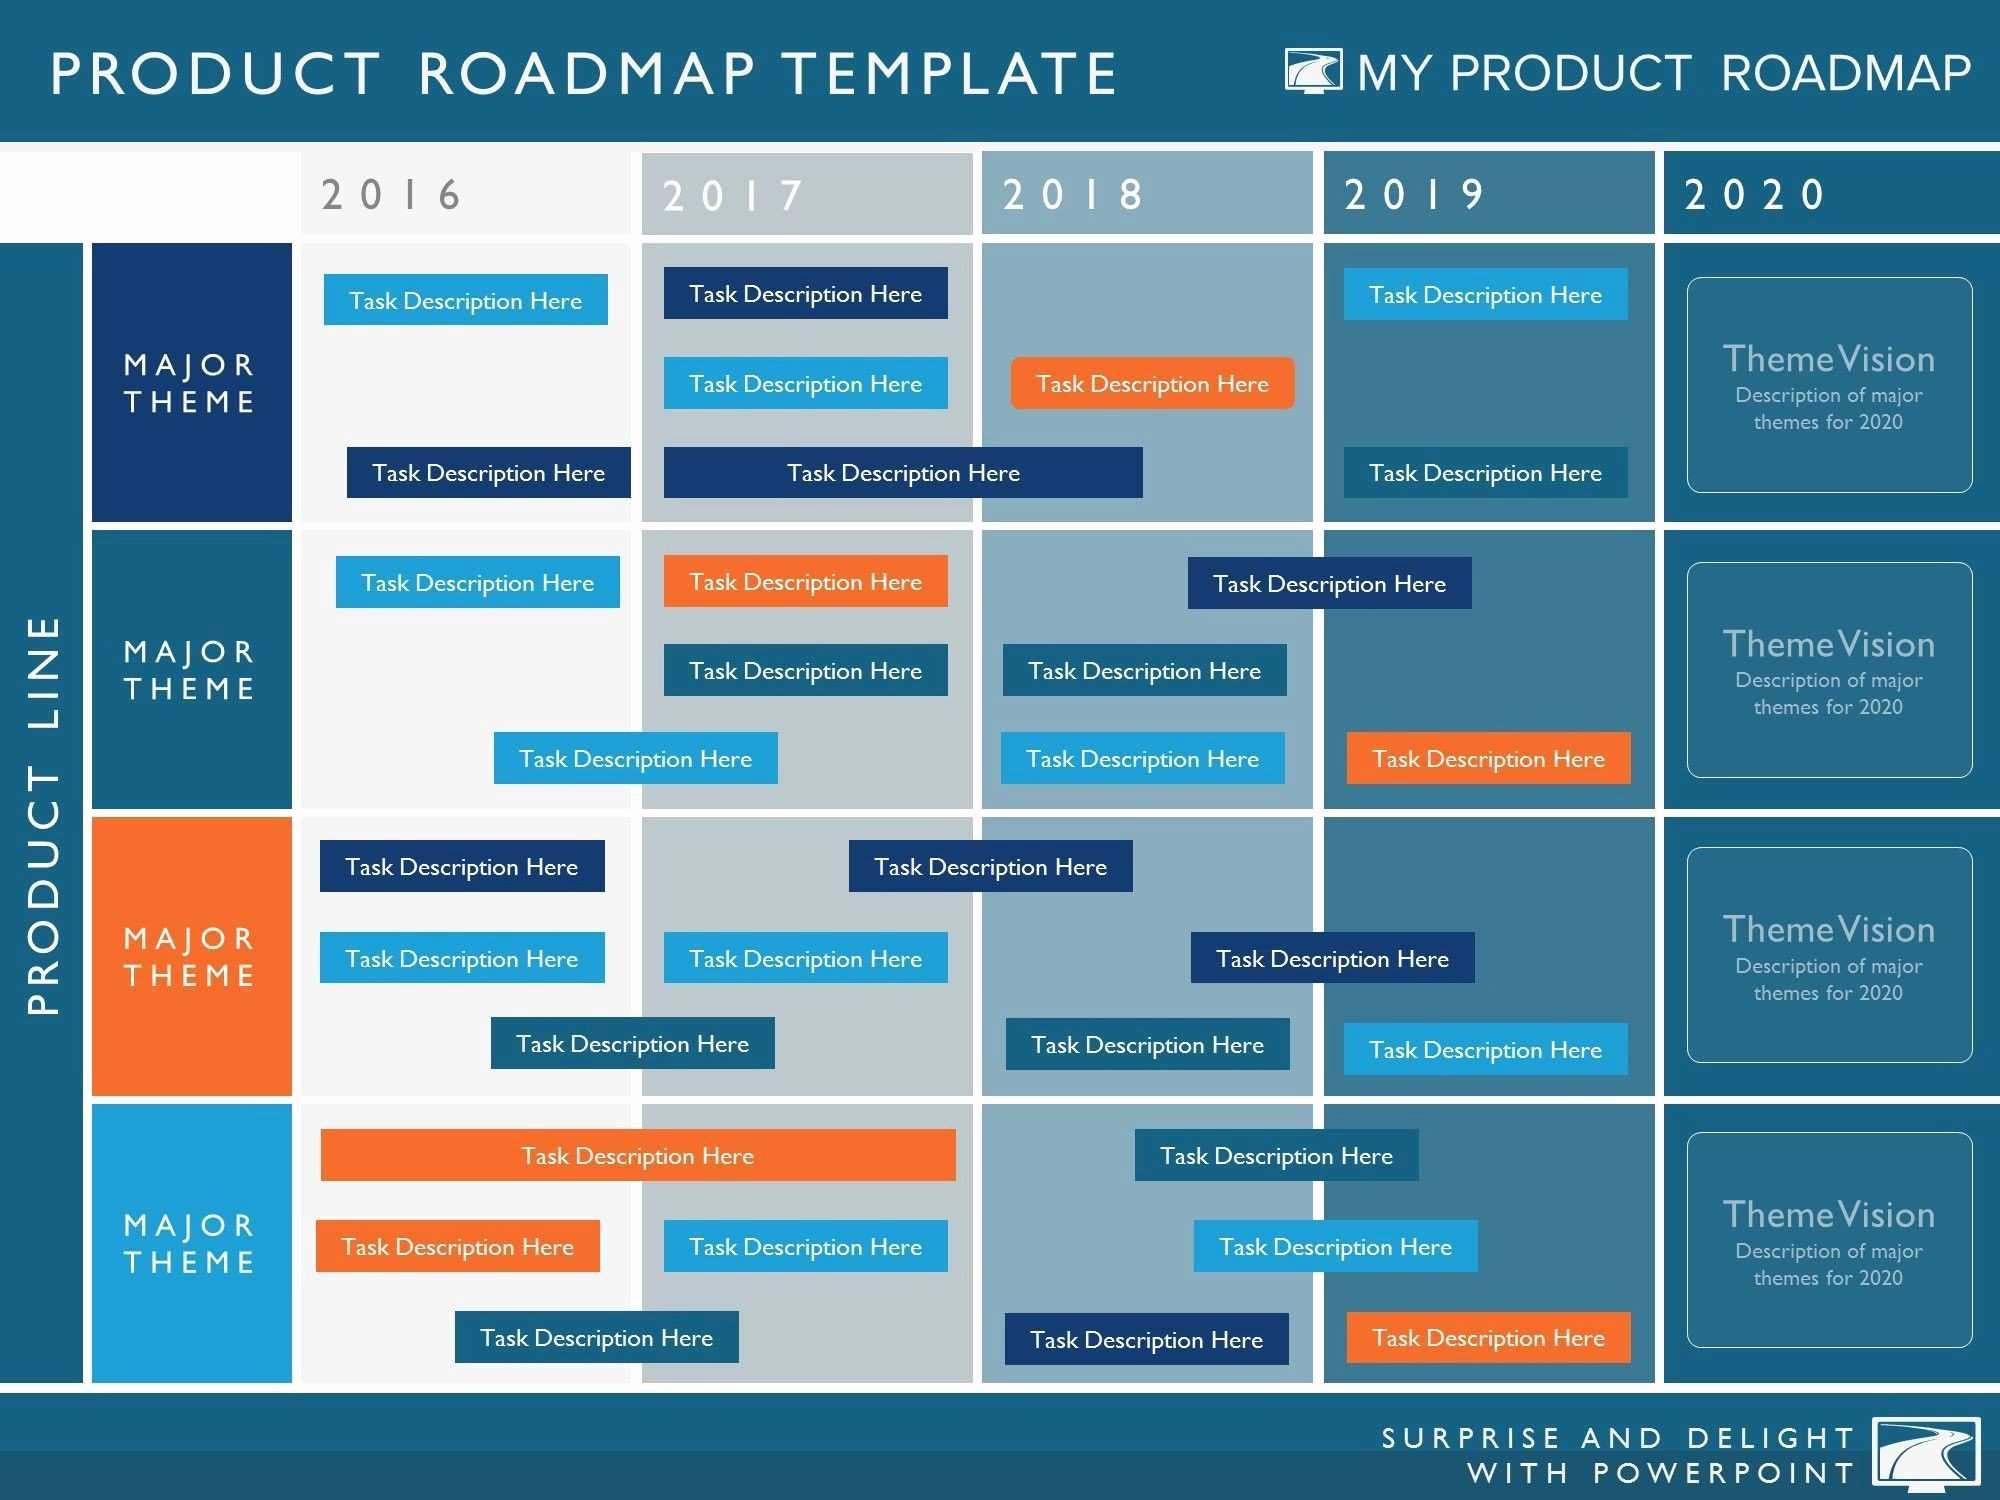 Product Roadmap Template Excel Best Of Elegant Microsoft Excel Product Roadmap Template